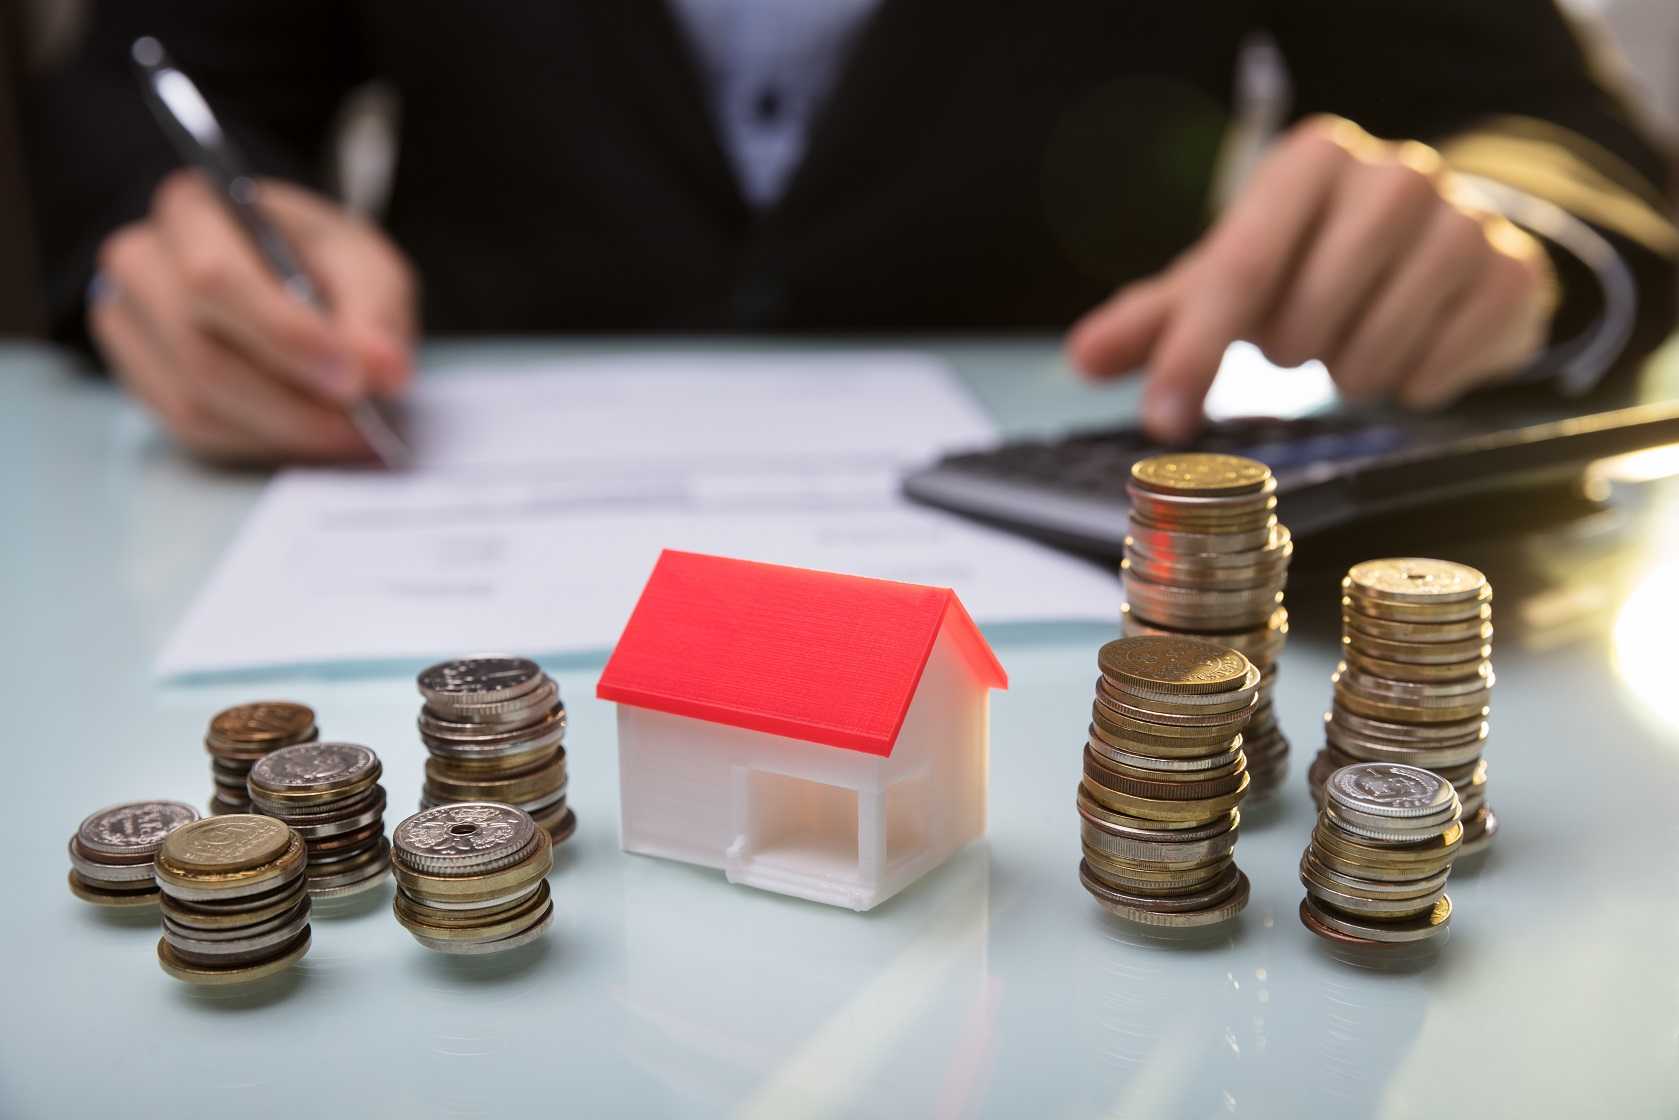 Enforcement of arrears: CRAR and essential considerations for landlords